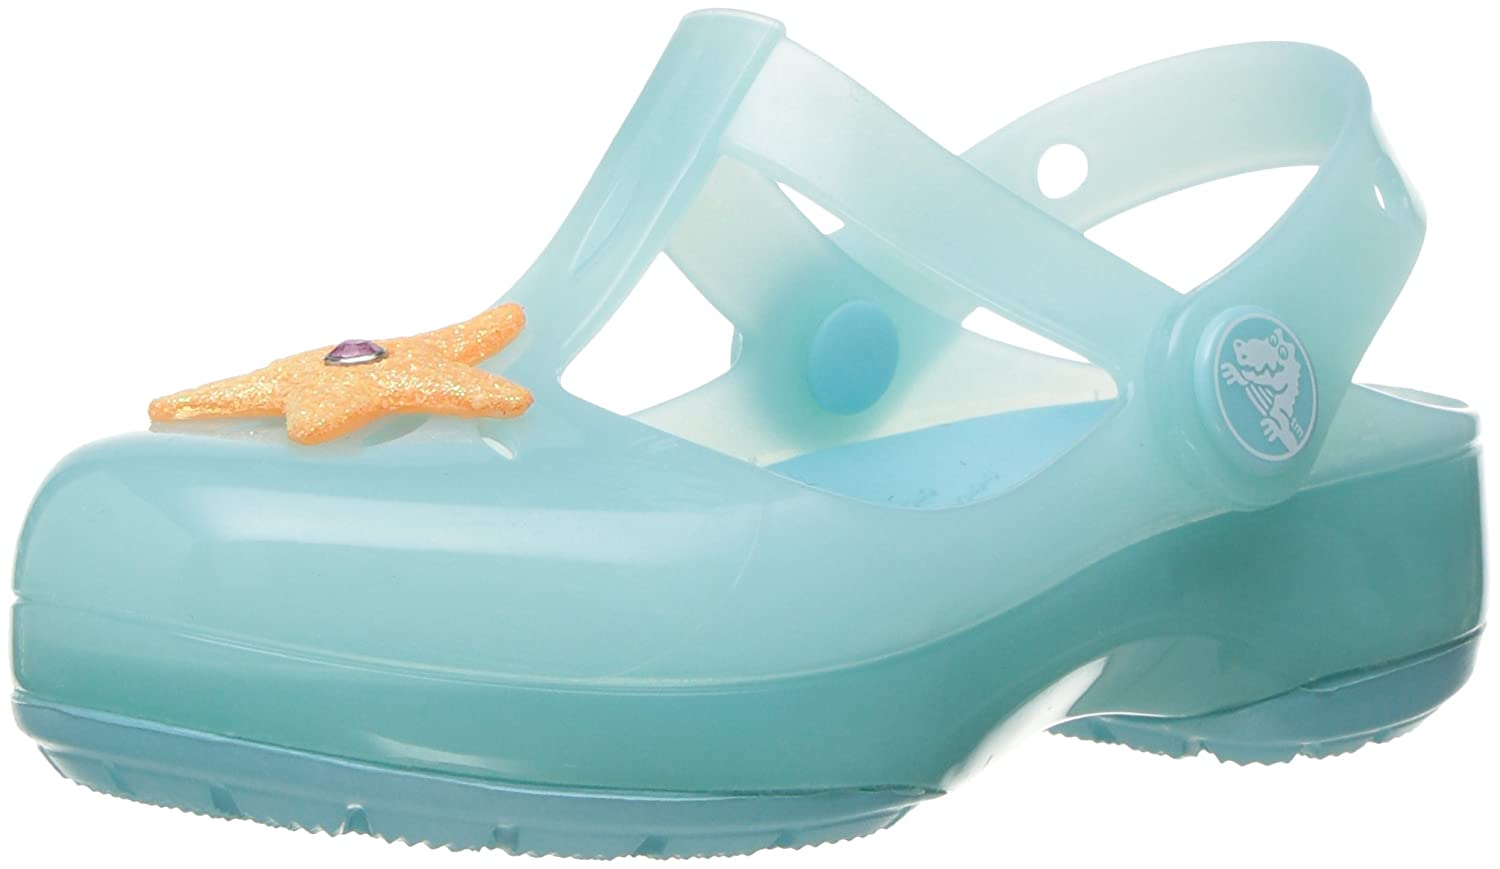 Crocs Kids' Isabella PS Clog Crocs Isabella Clog PS - K